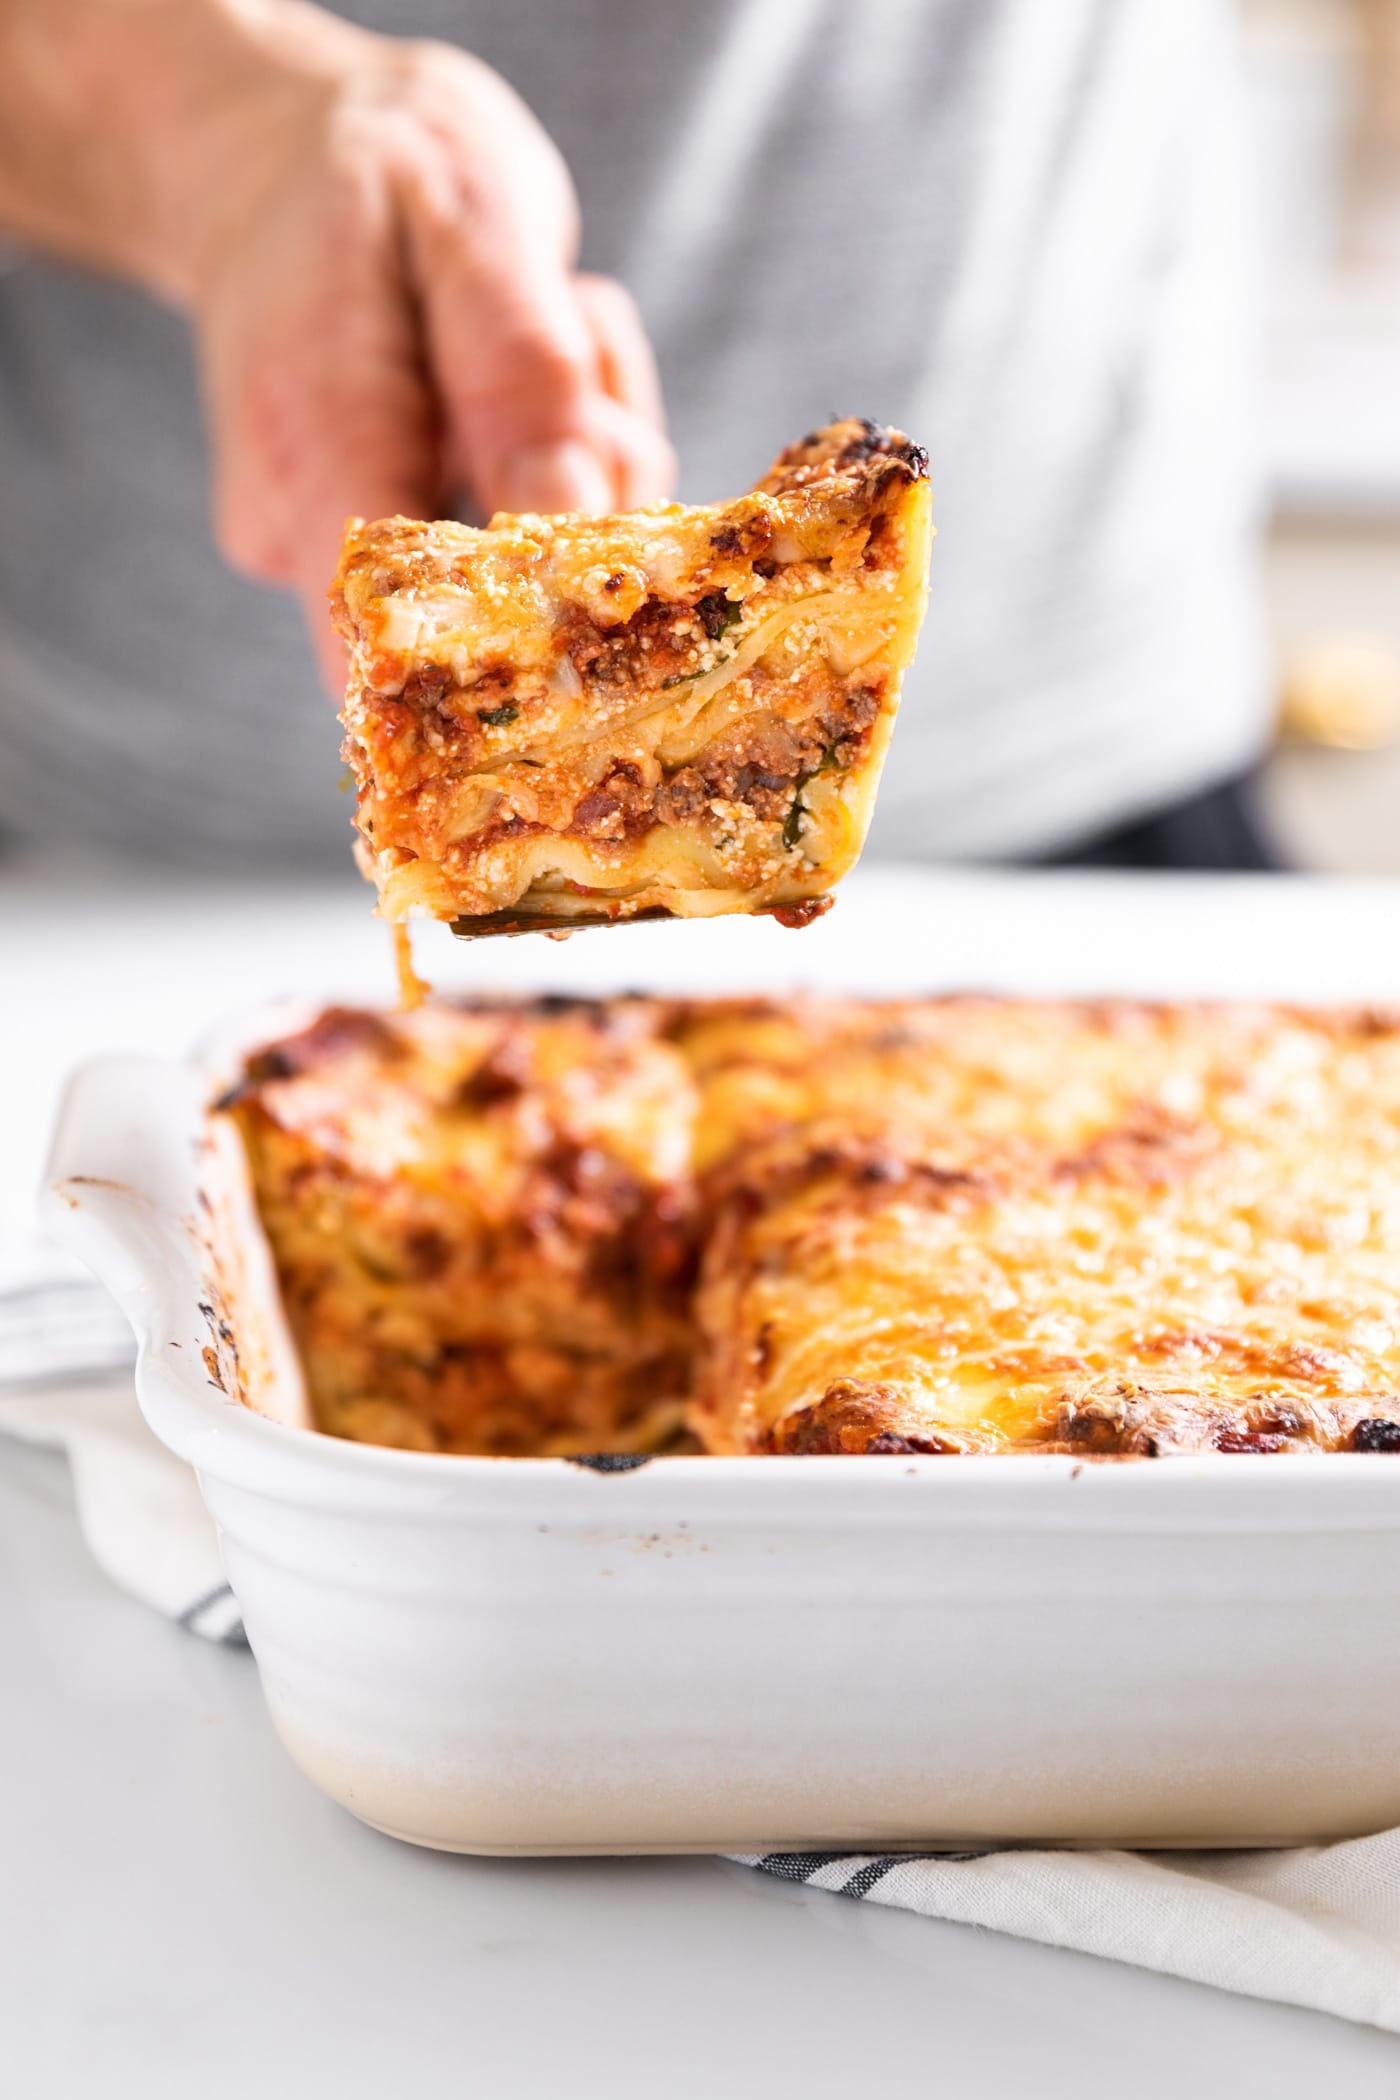 Side view of white pan with lasagna in it with hand holding cut piece above pan